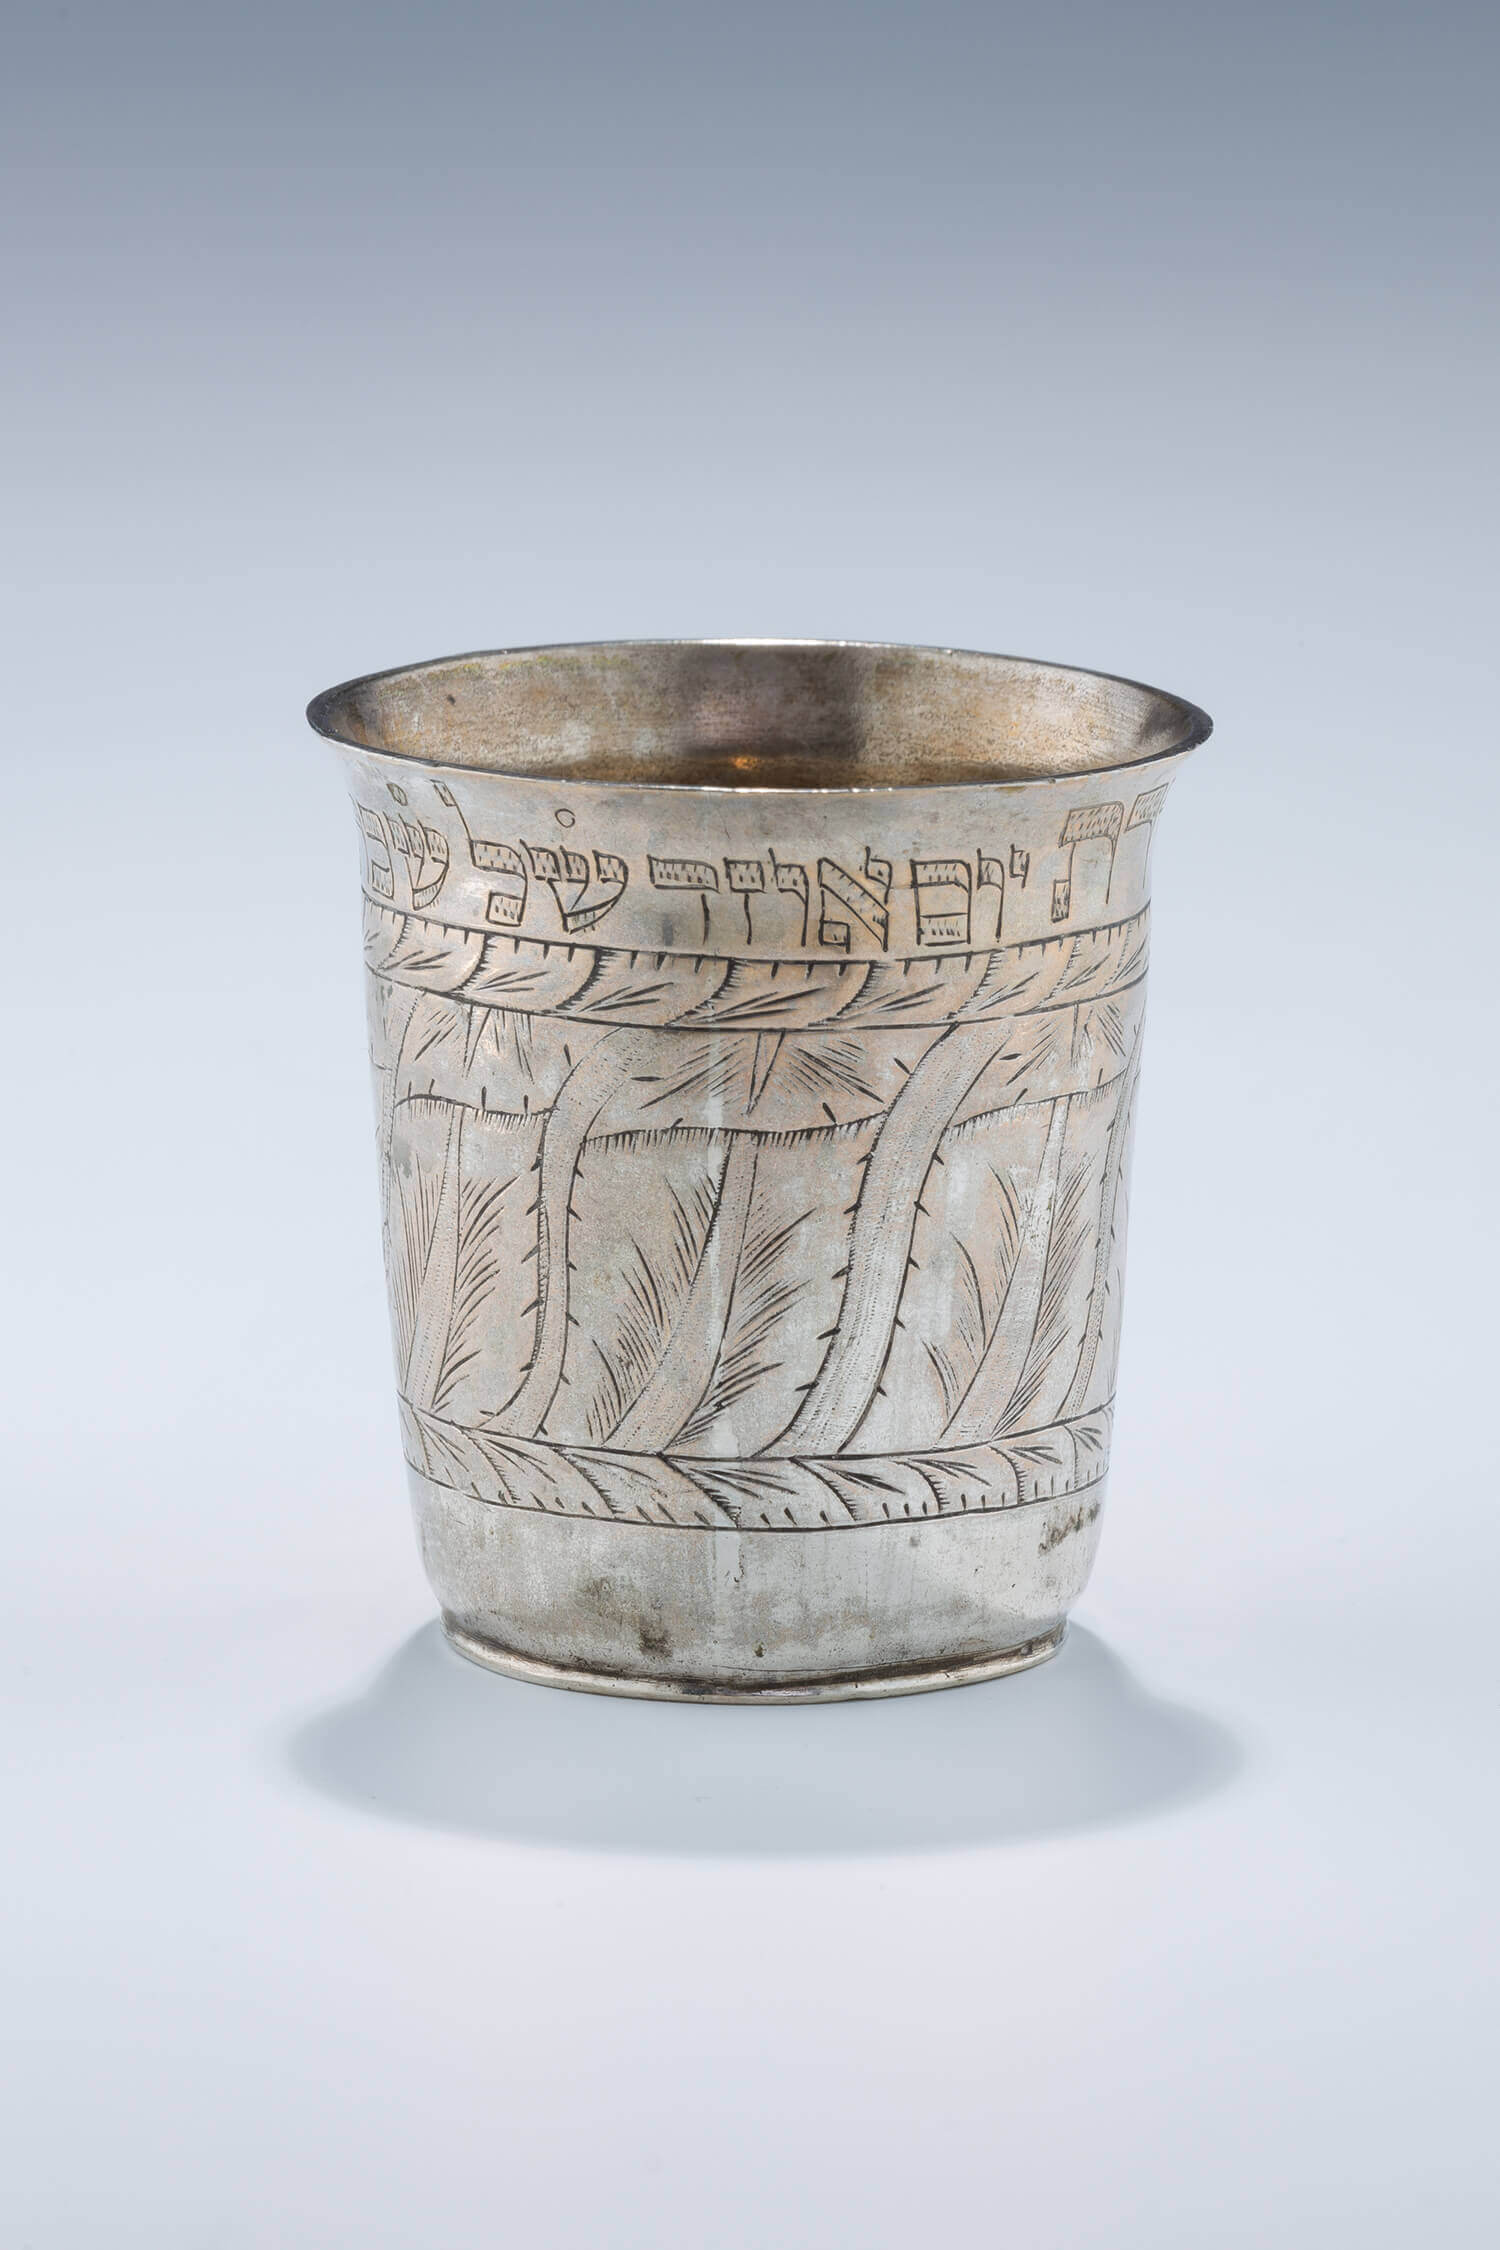 053. A RARE AND IMPORTANT SILVER SHMIROT BEAKER